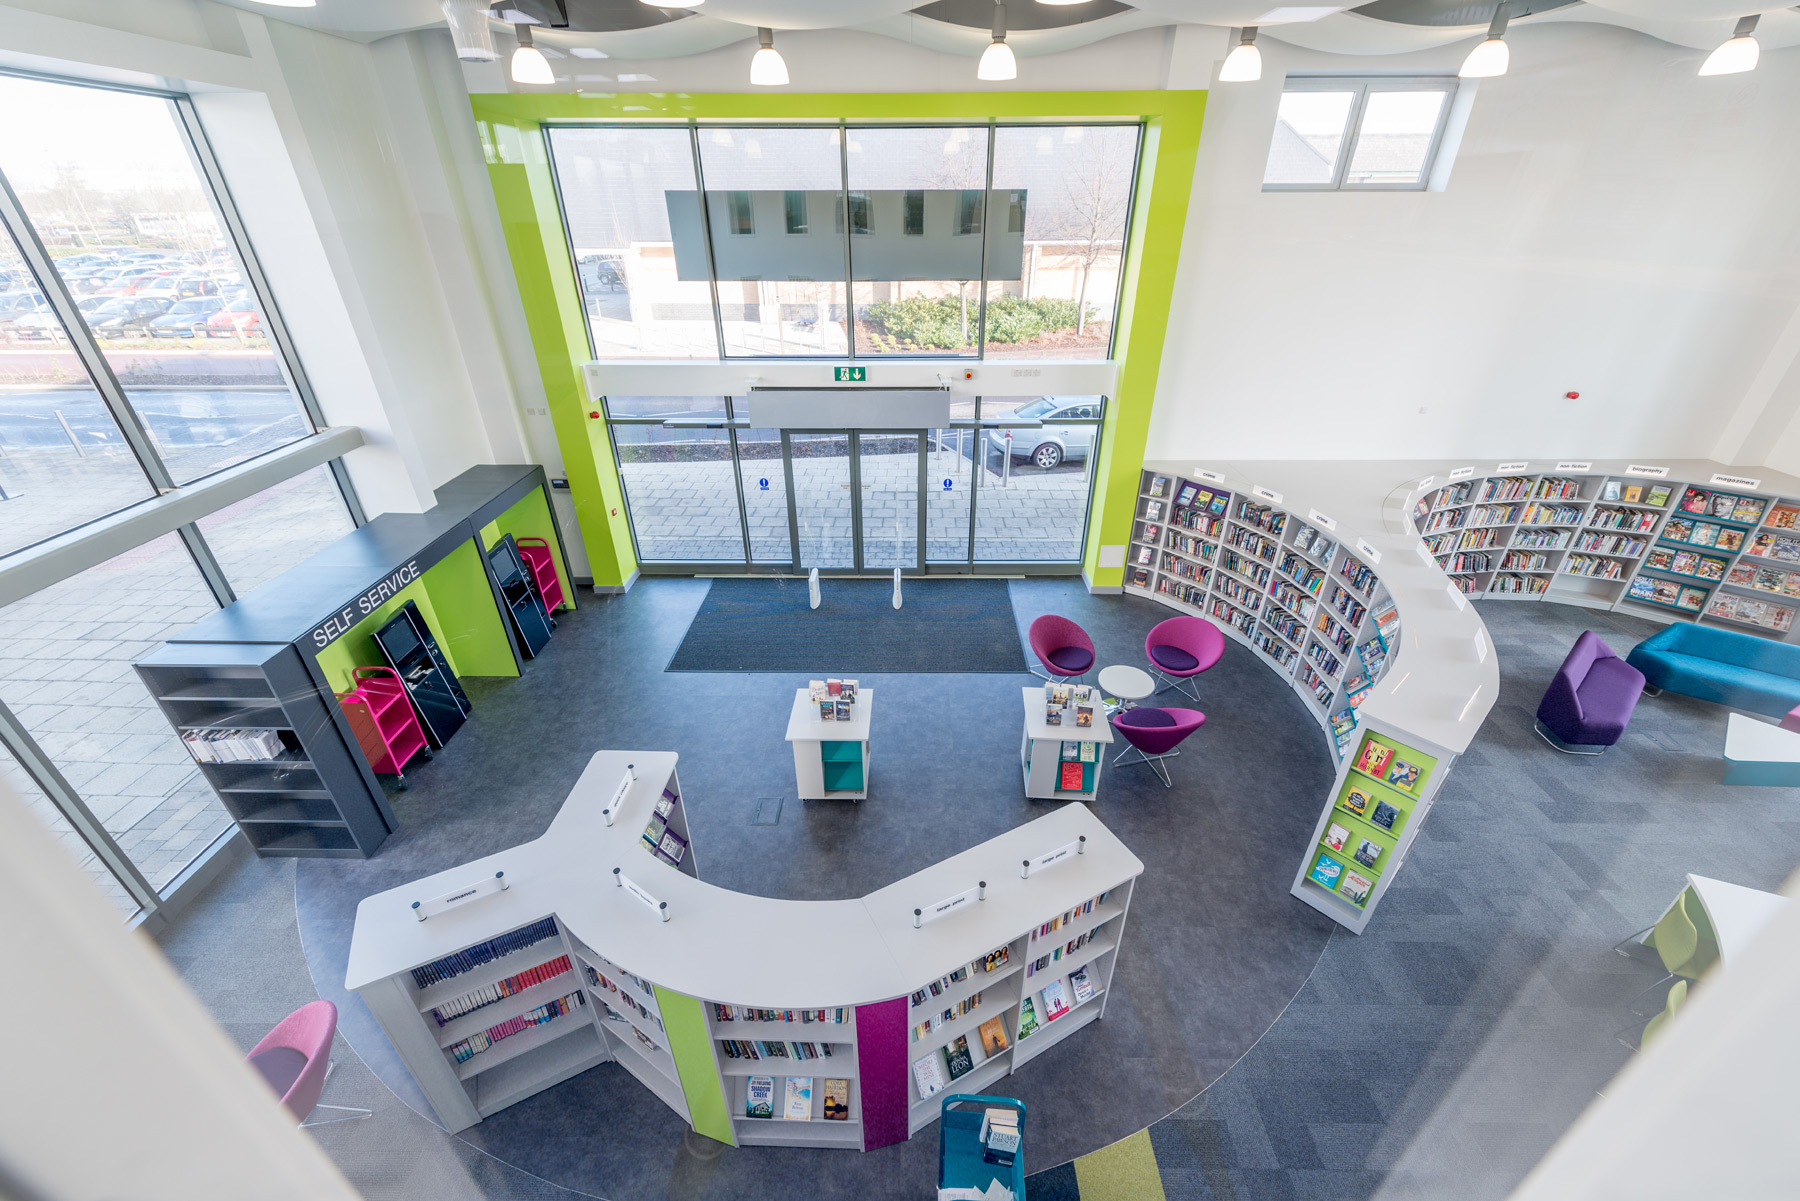 Kingston Library UK Custom Curved Shelving Draws Visitors Into The Space